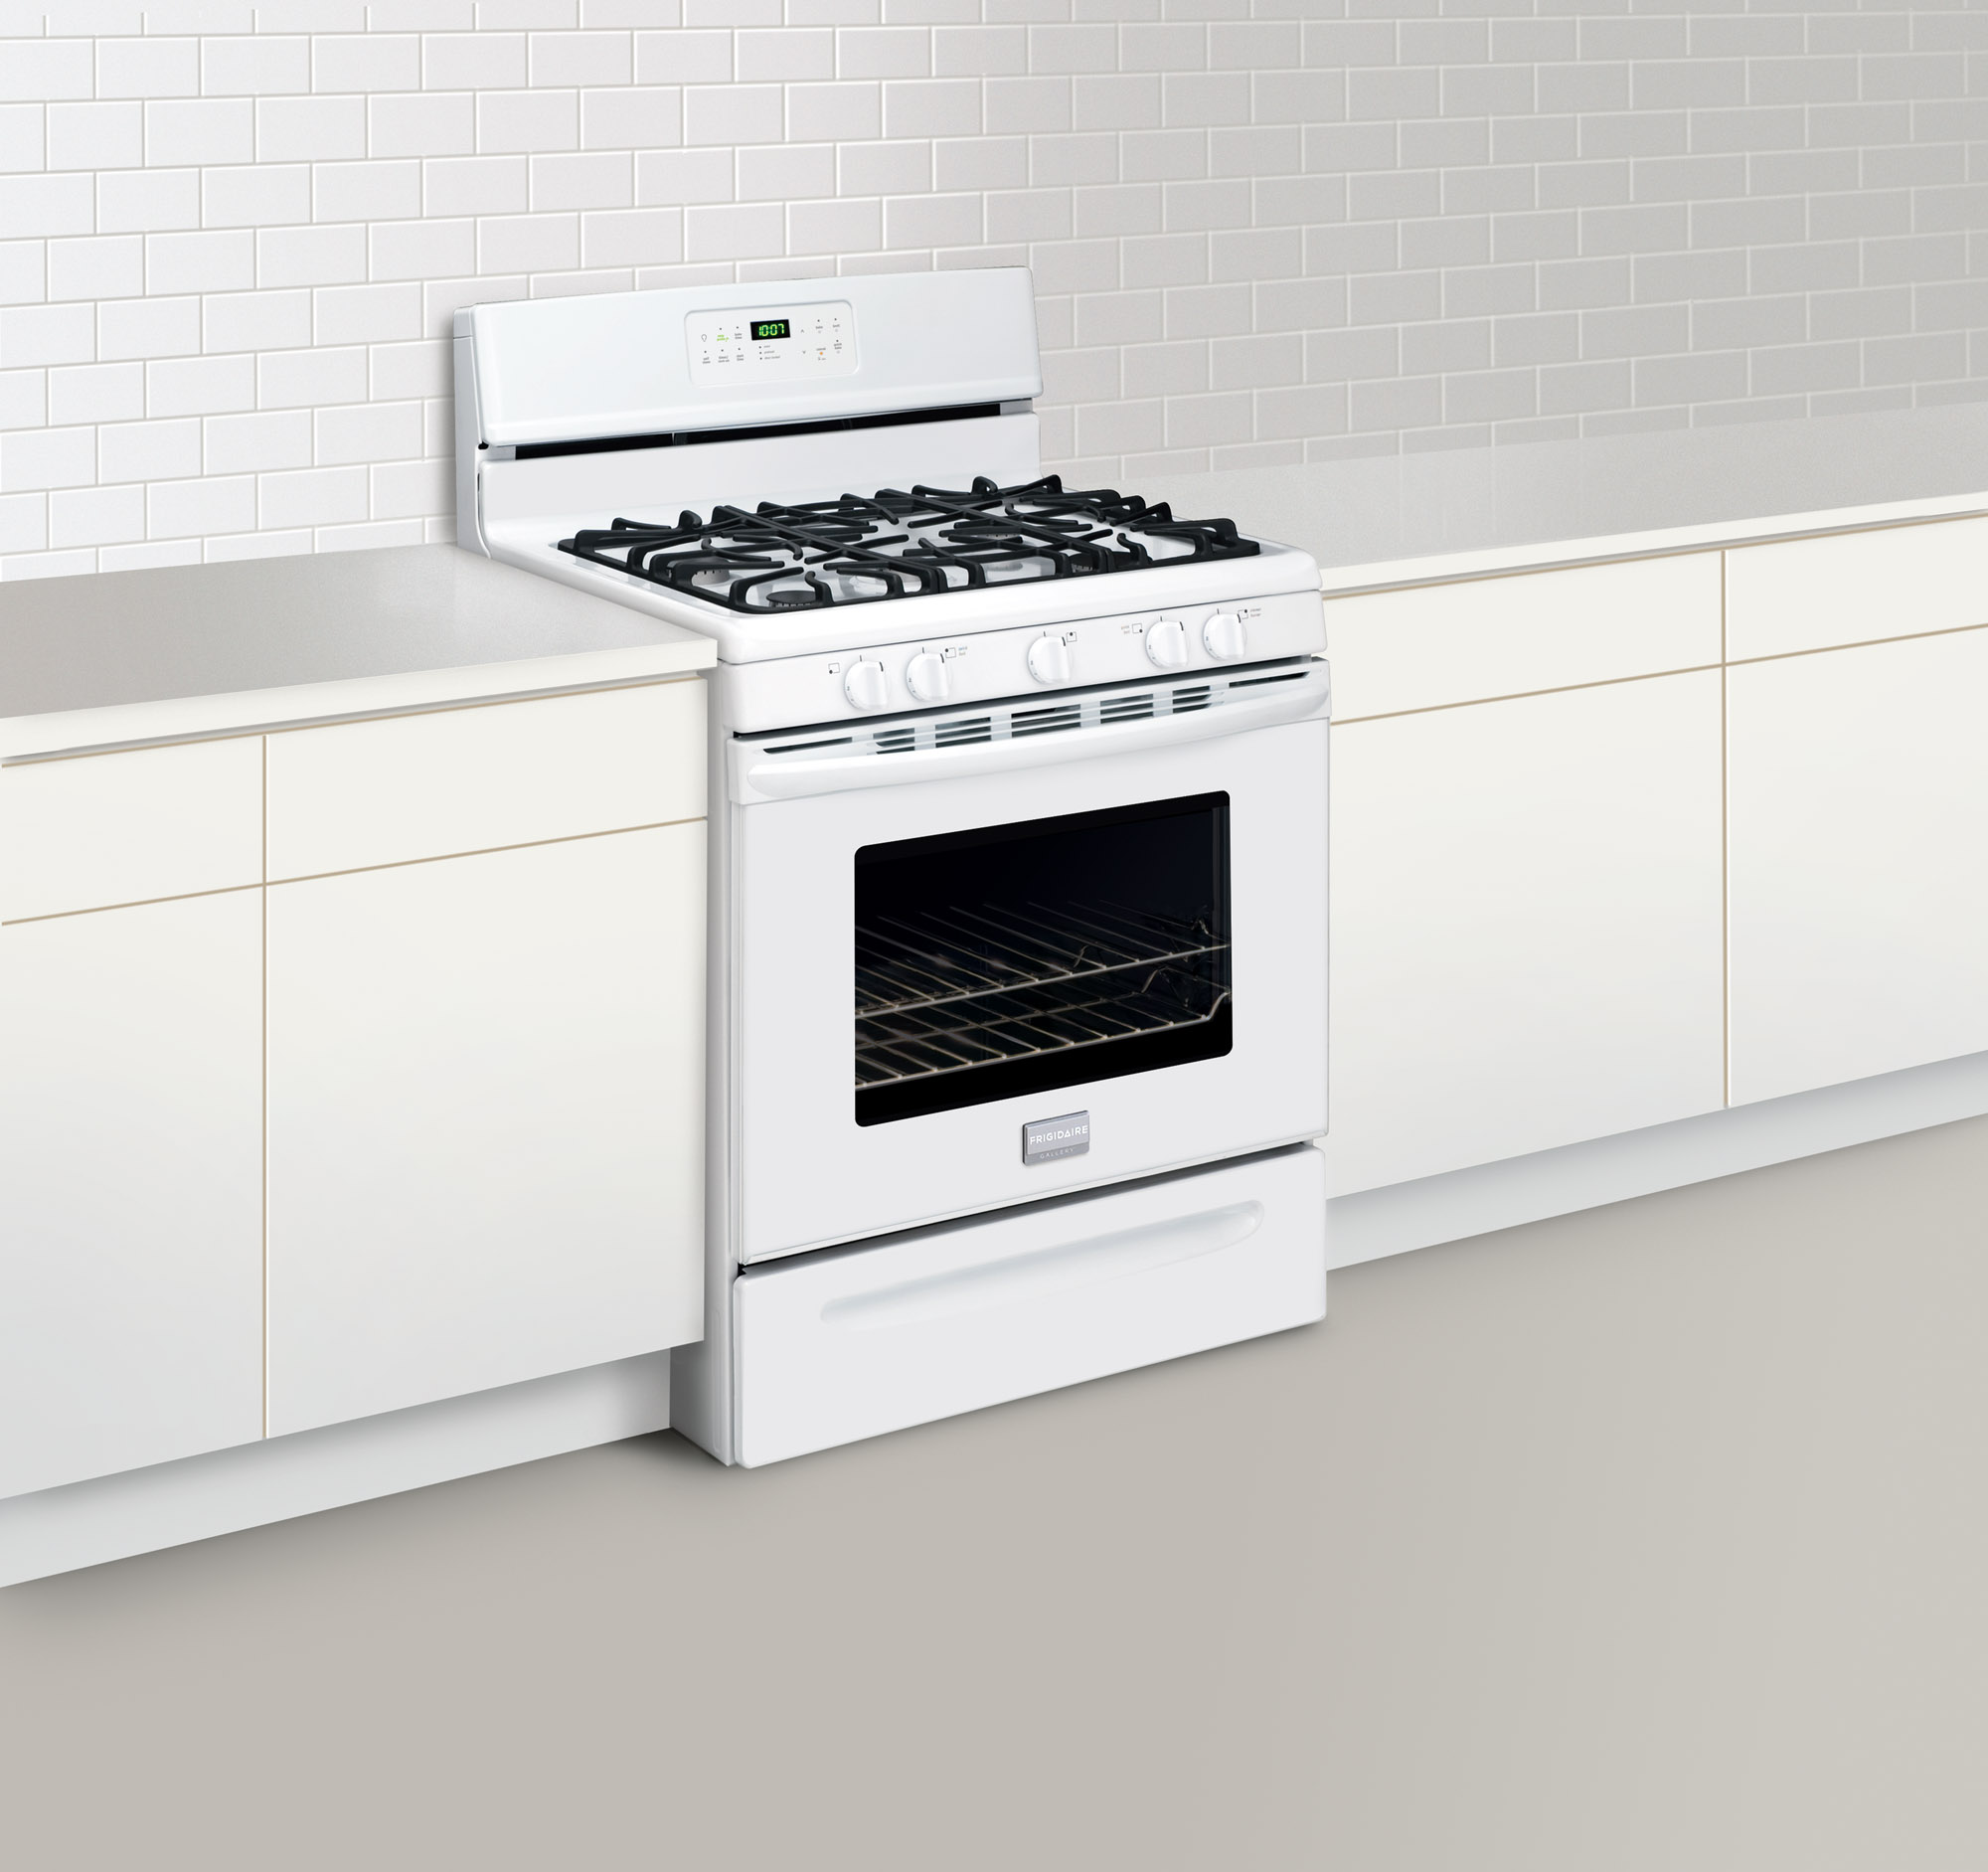 Frigidaire Gallery 5.0 cu. ft. Freestanding Gas Range  - White